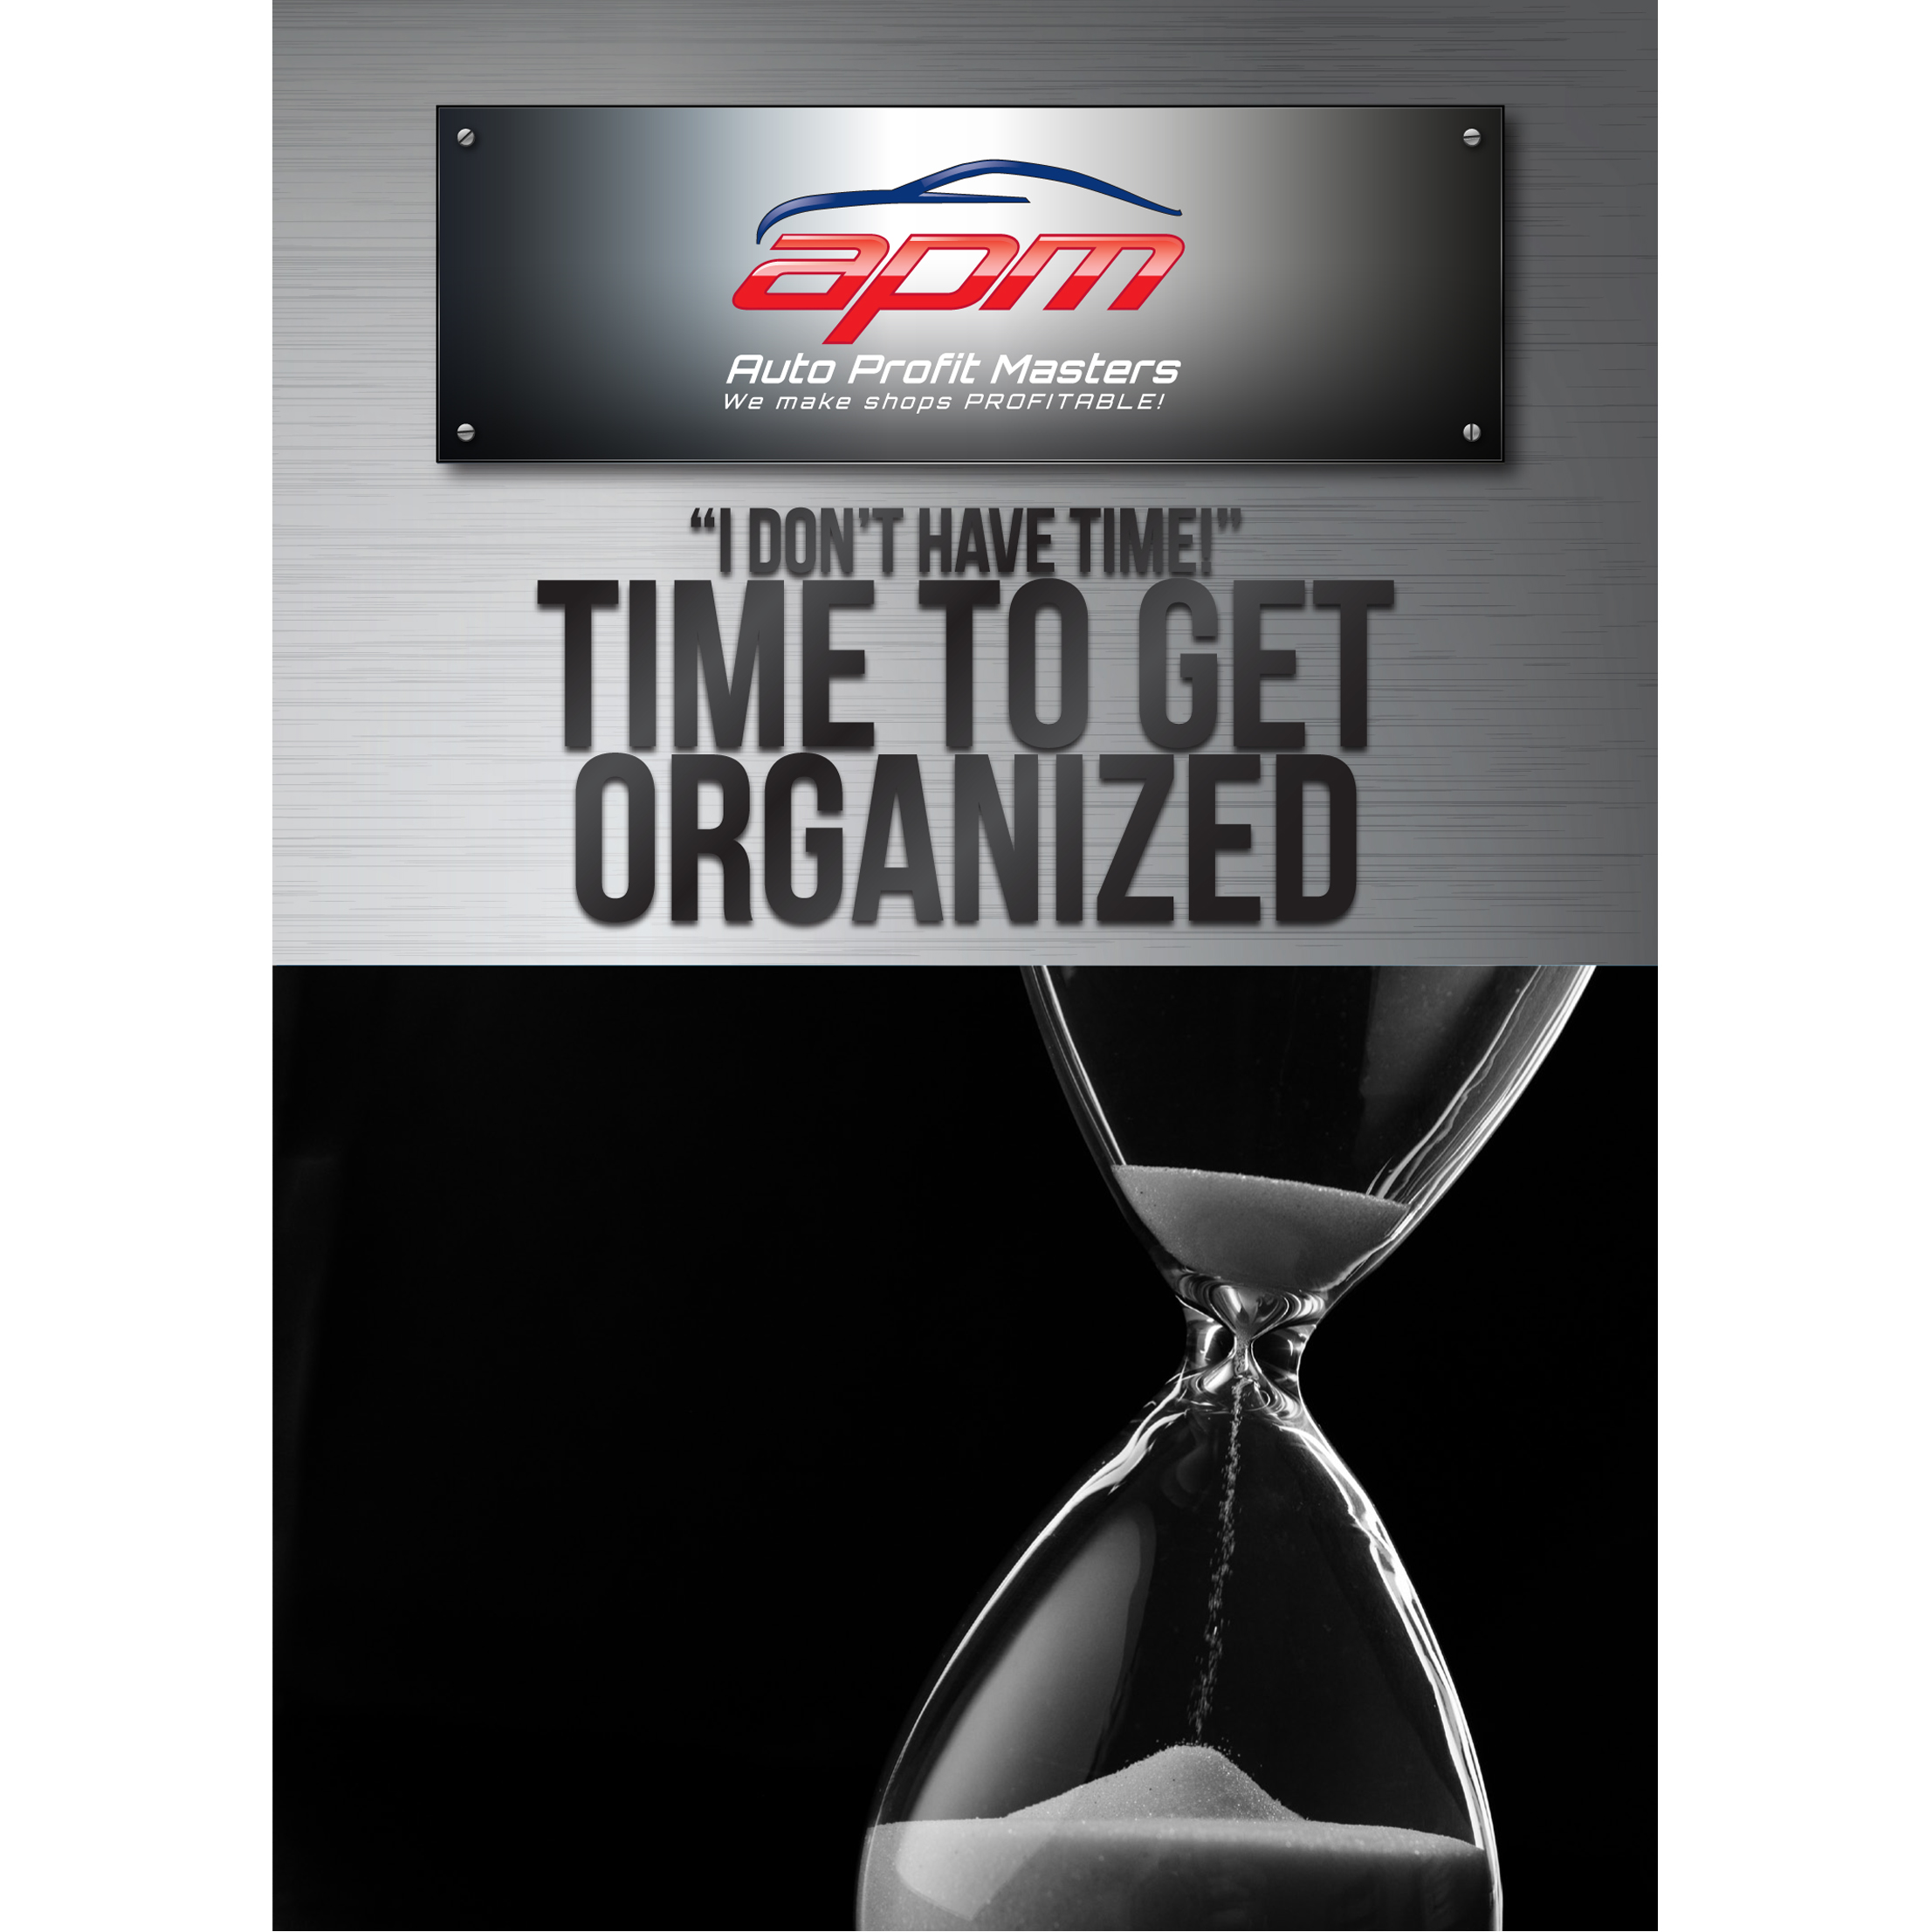 I dont Have Time - Time to Get Organized - Auto Profist Masters Shop Owner Training